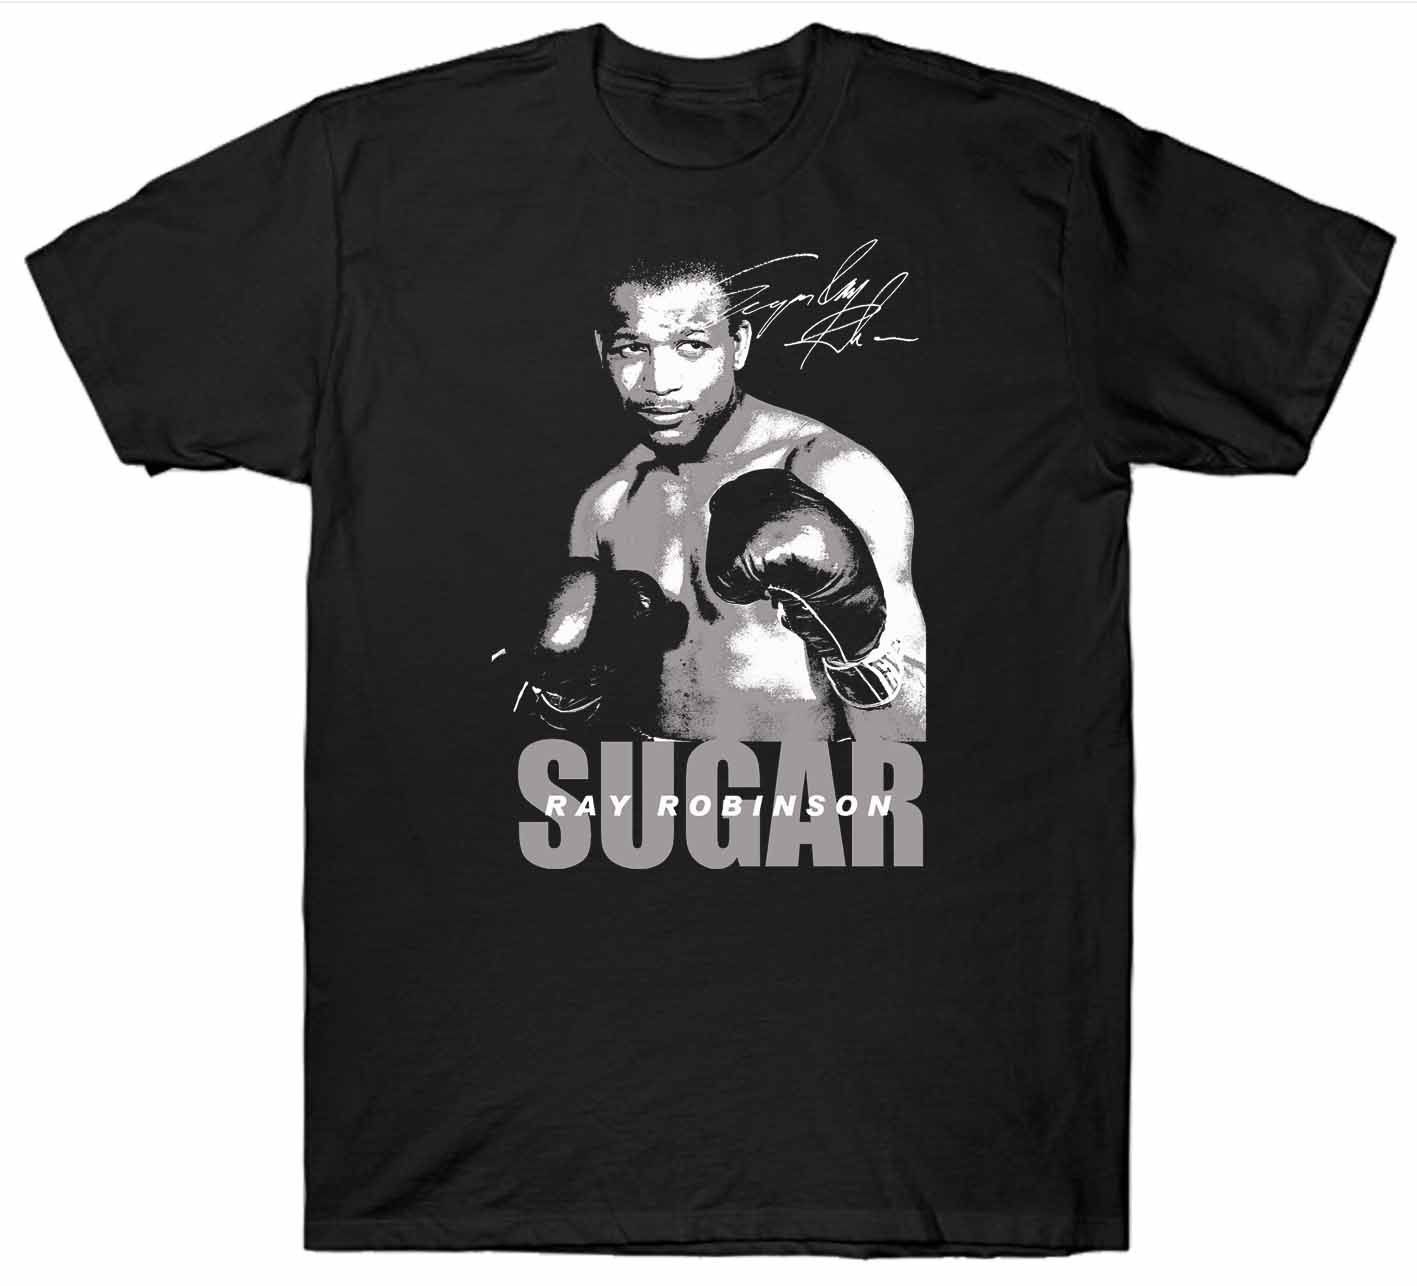 SUGAR RAY ROBINSON T SHIRT BOXER BOXING GLOVES Casual Short Sleeve T shirt Novelty